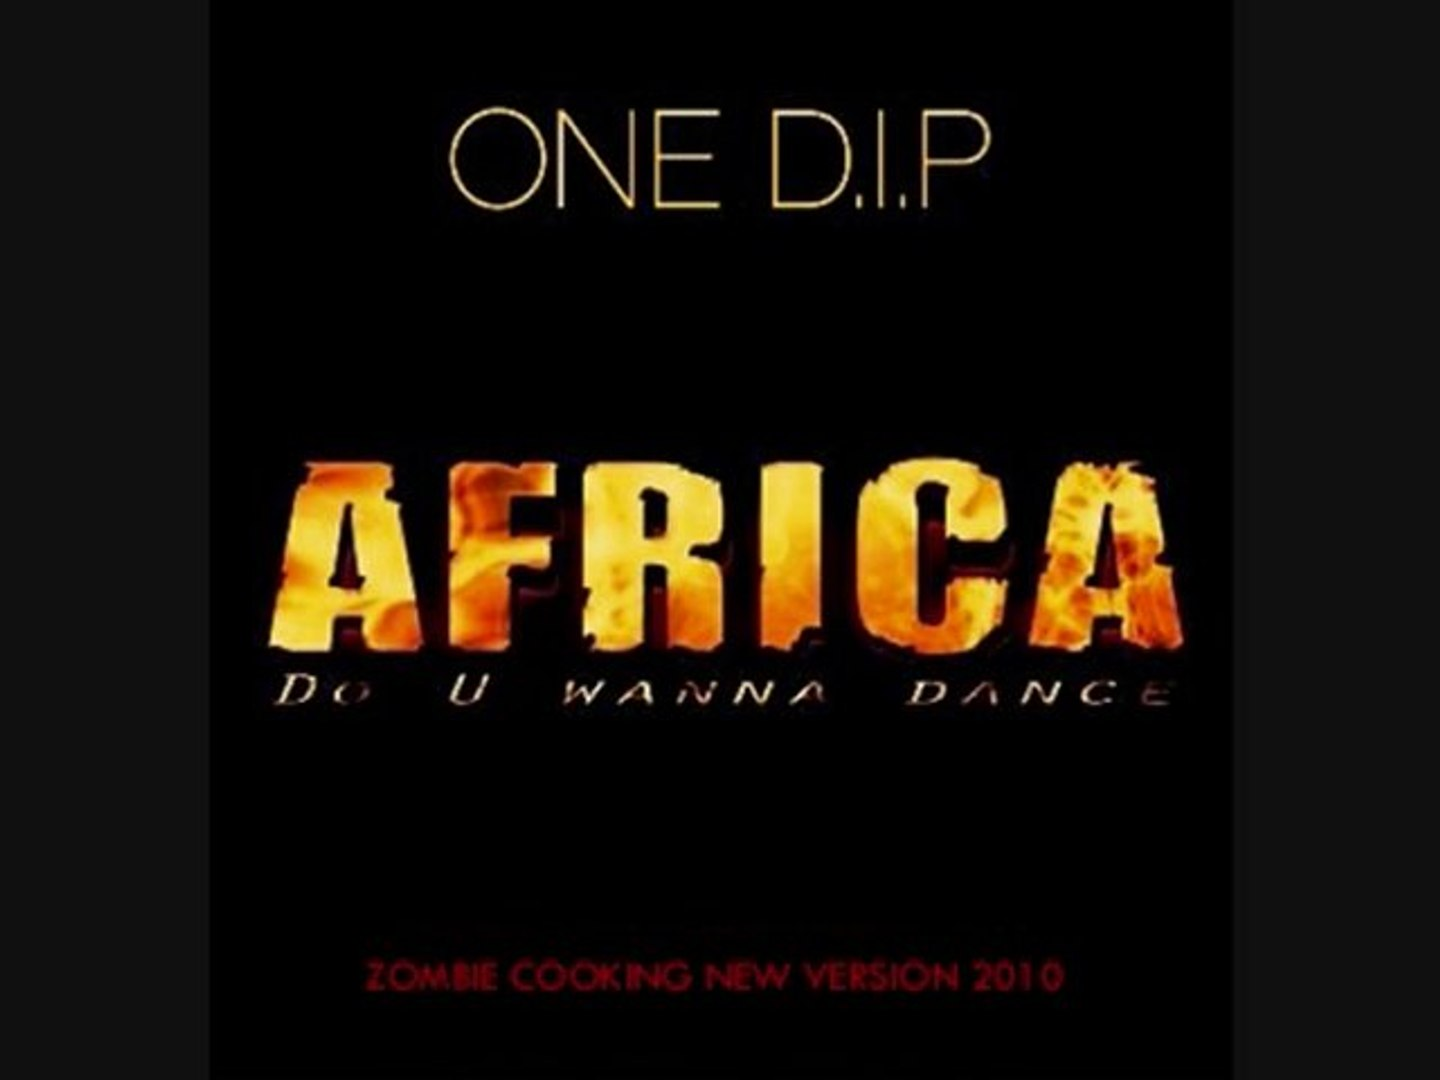 ONE D.I.P. - AFRICA - Zombie Cooking 2010 version